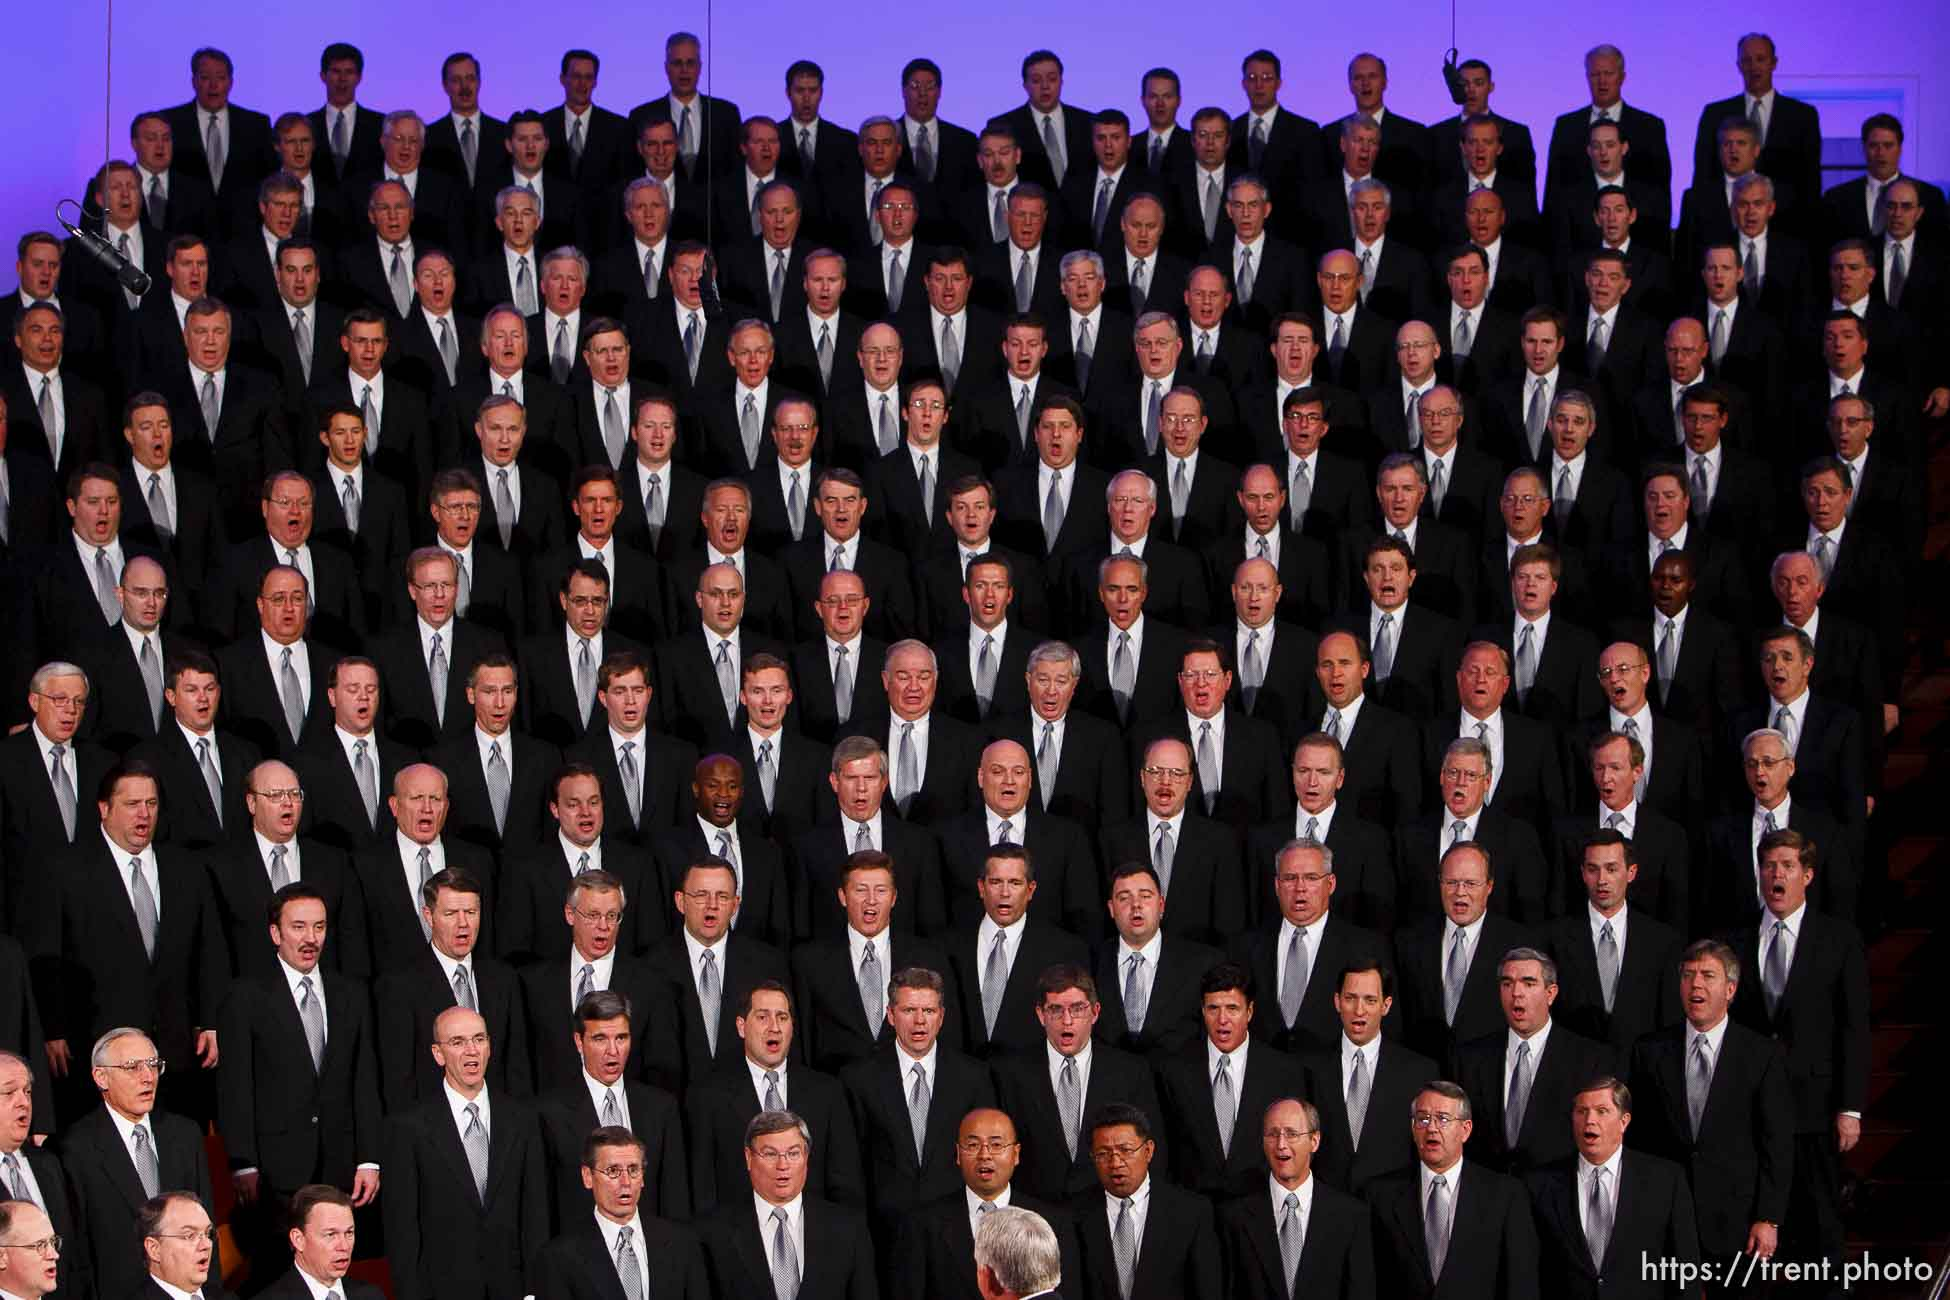 mormon tabernacle choir. LDS General Conference, and re-dedication of the historic tabernacle building after a renovation.